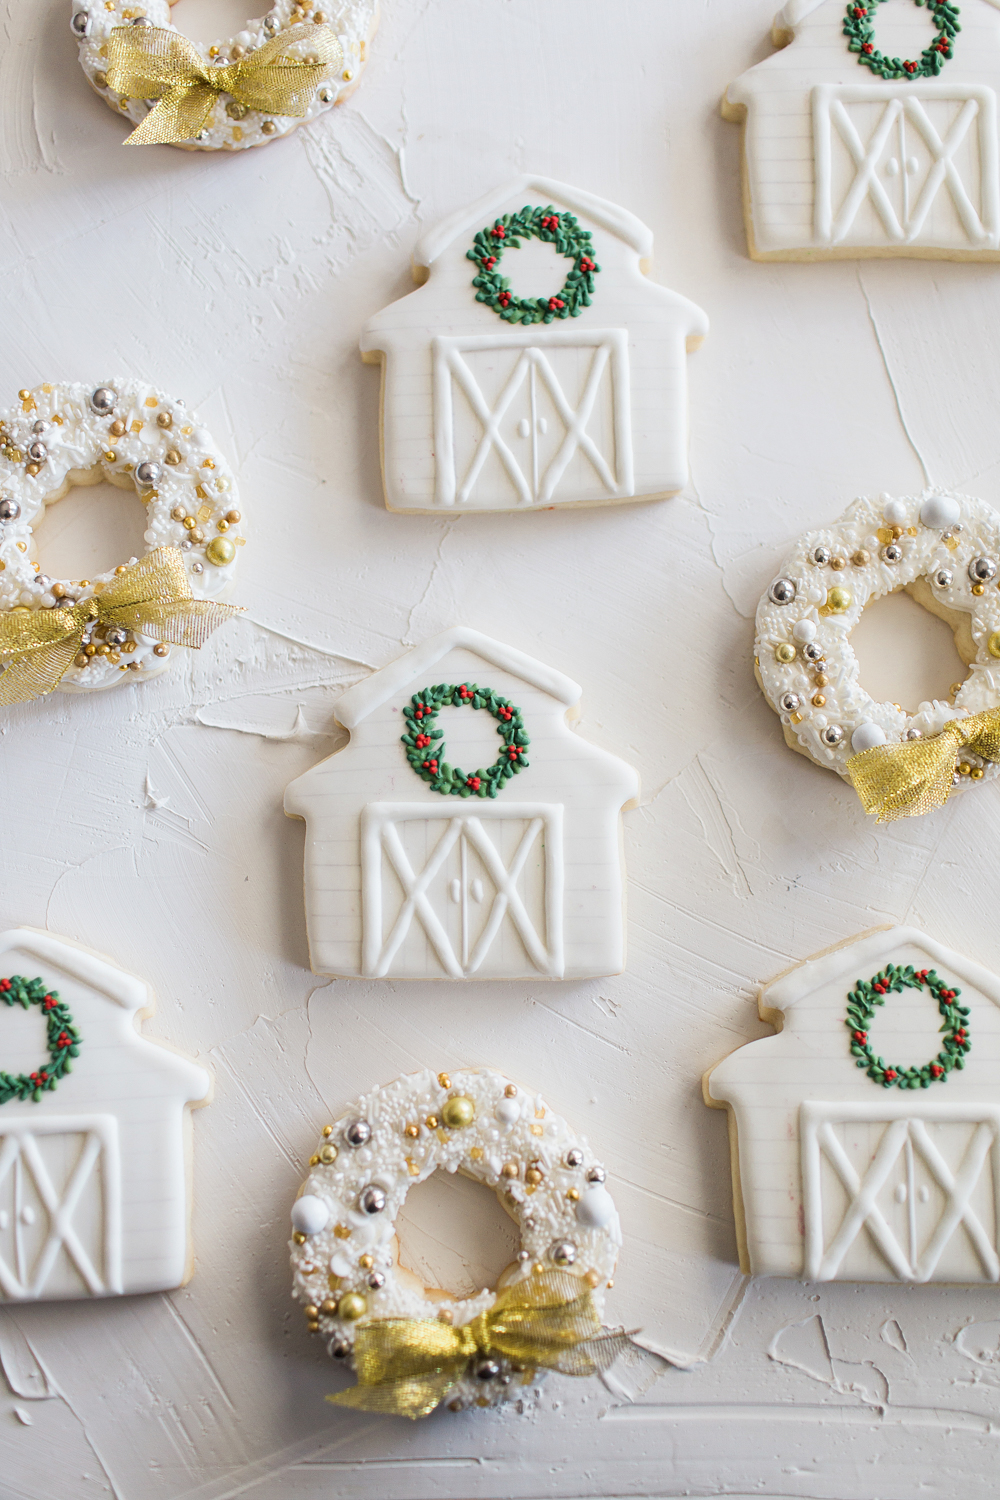 How to Make a Christmas Wreath | Space Coast Florida Sterling Stables | Winter Outfit Inspiration | Central Florida Blogger Meetup | Pink Confections Cookies | Christmas Sugar Cookies